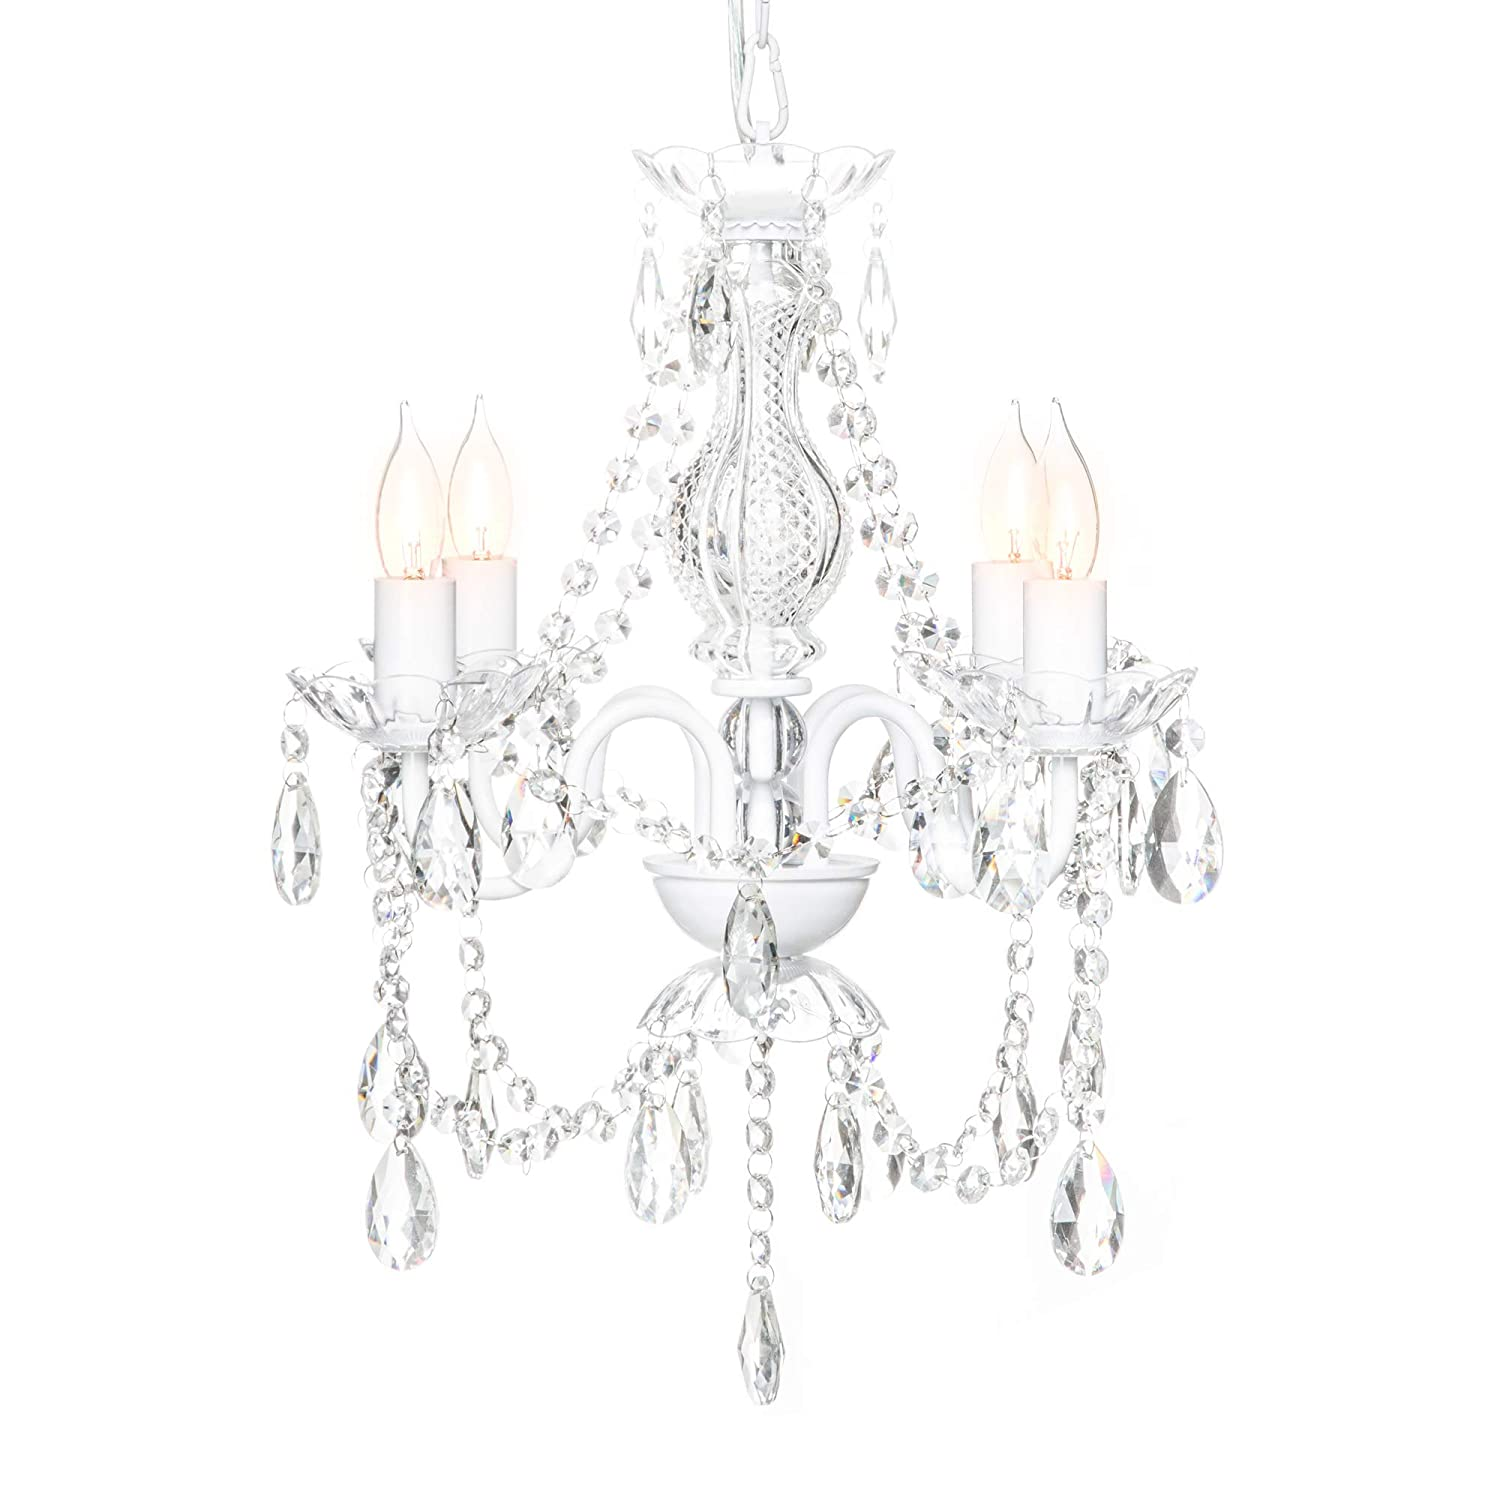 Best Choice Products Elegant Acrylic Crystal Chandelier Ceiling Light  Fixture for Dining Room, Foyer, Bedroom - White